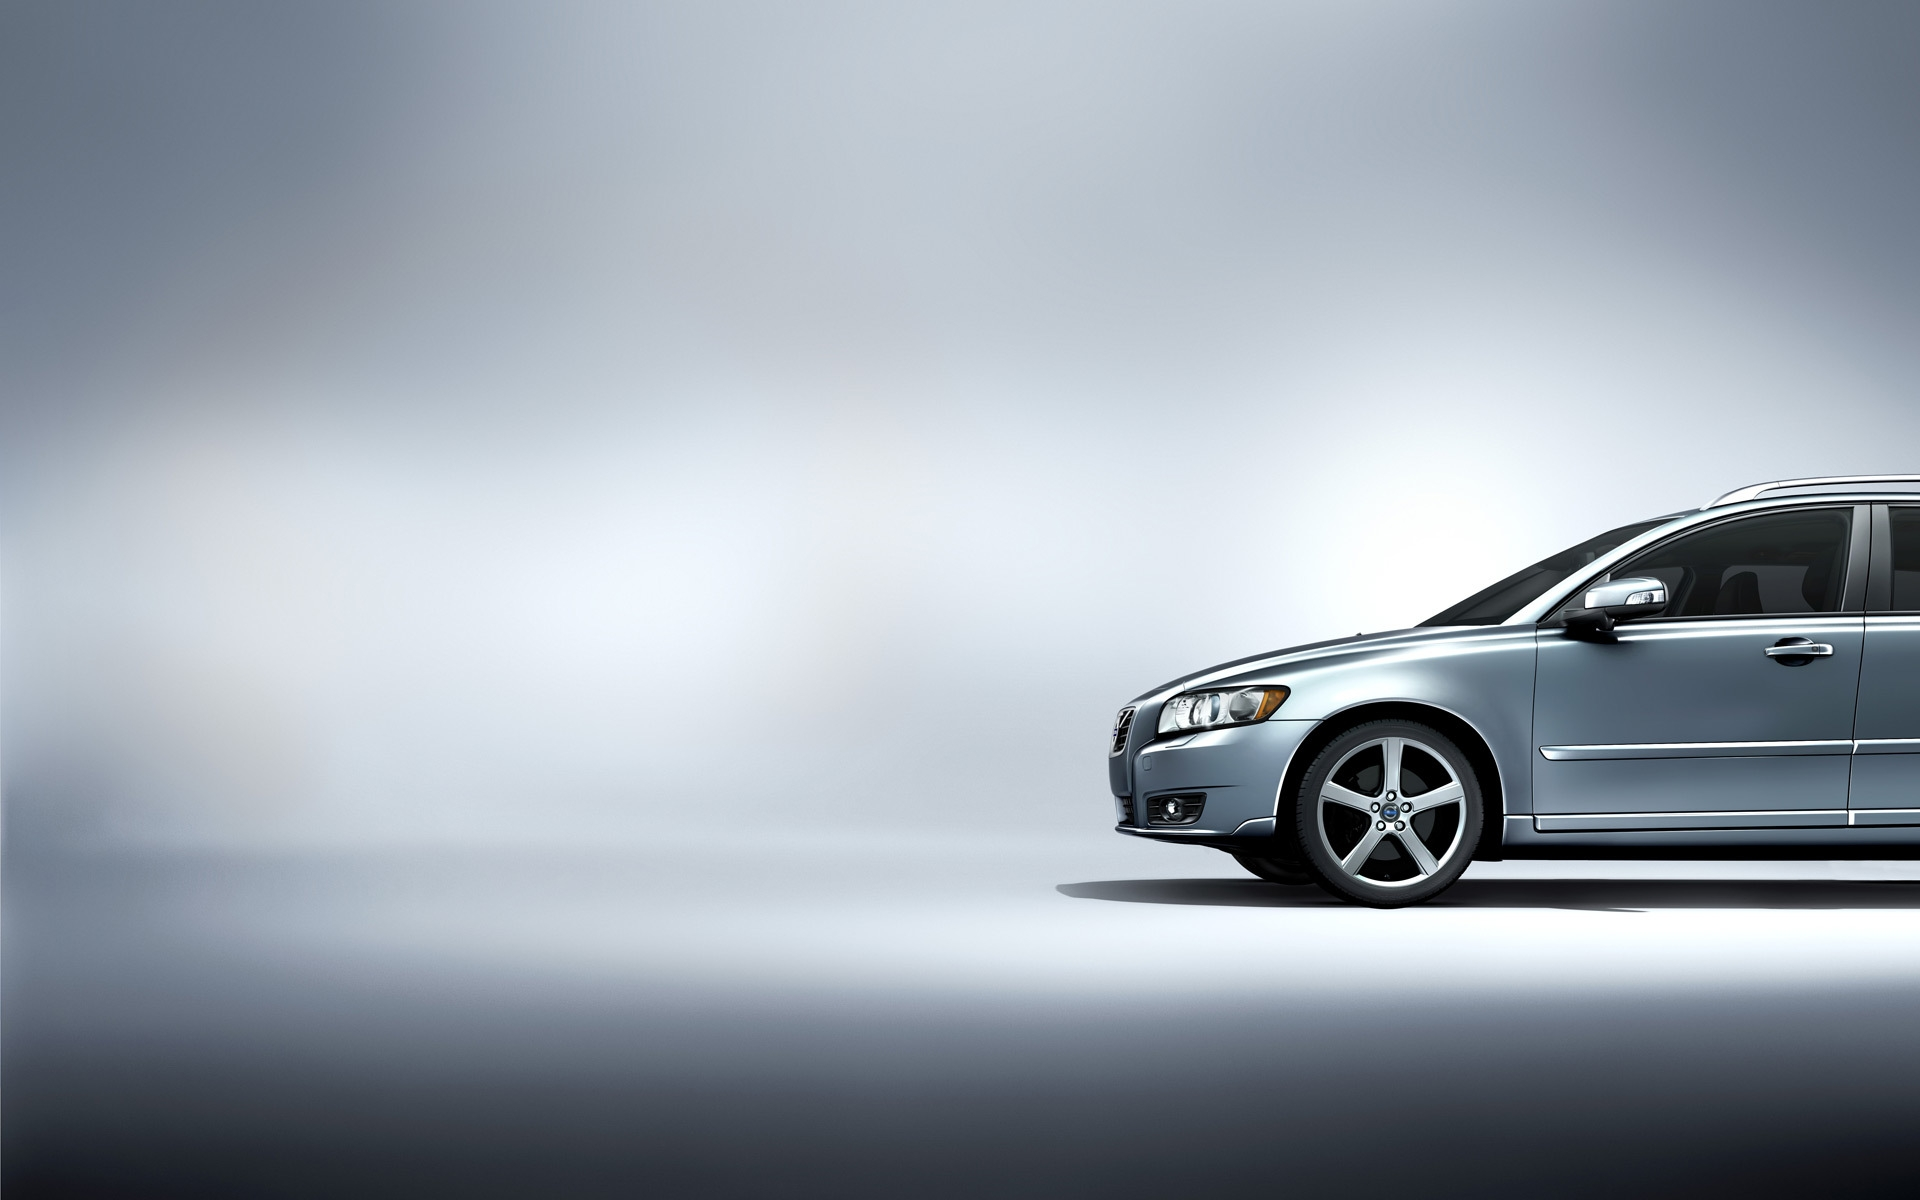 Car Background HD Wallpapers Pulse 1920x1200